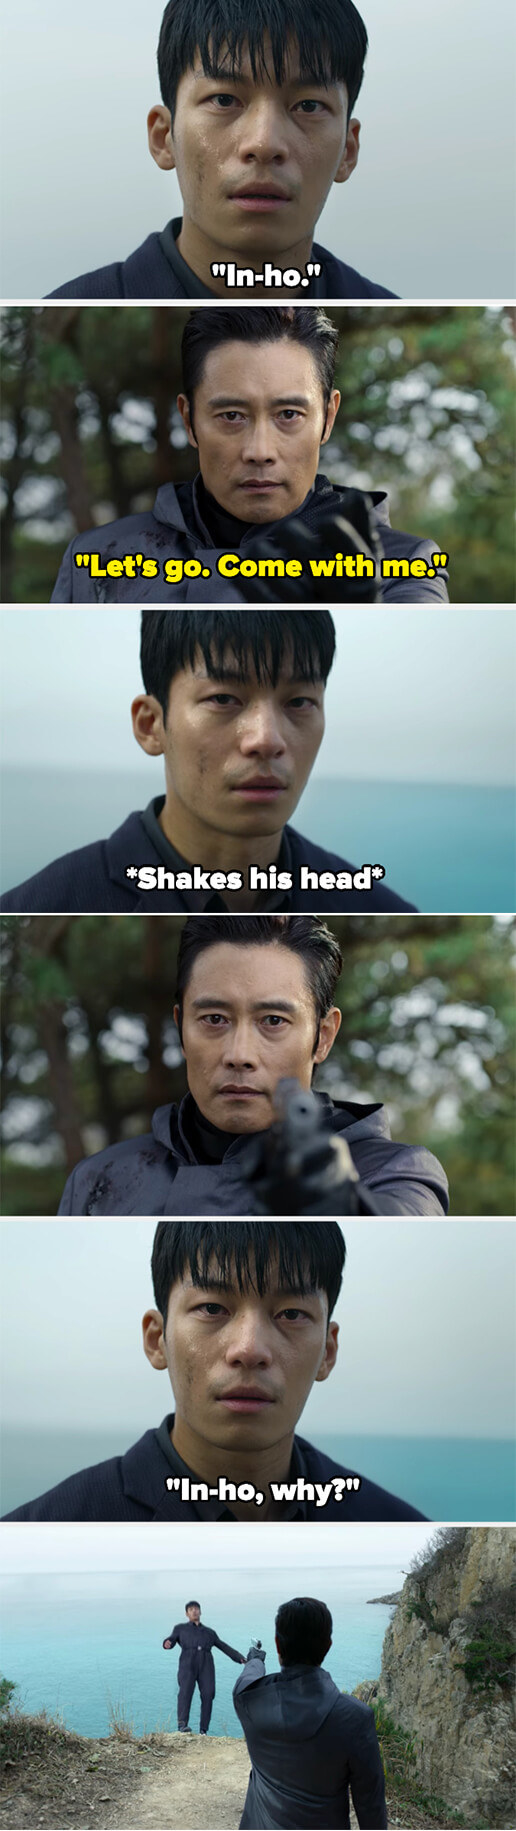 In-ho tries to get Jun-ho to go with him, but he refuses, to In-ho shoots him as In-ho asks why